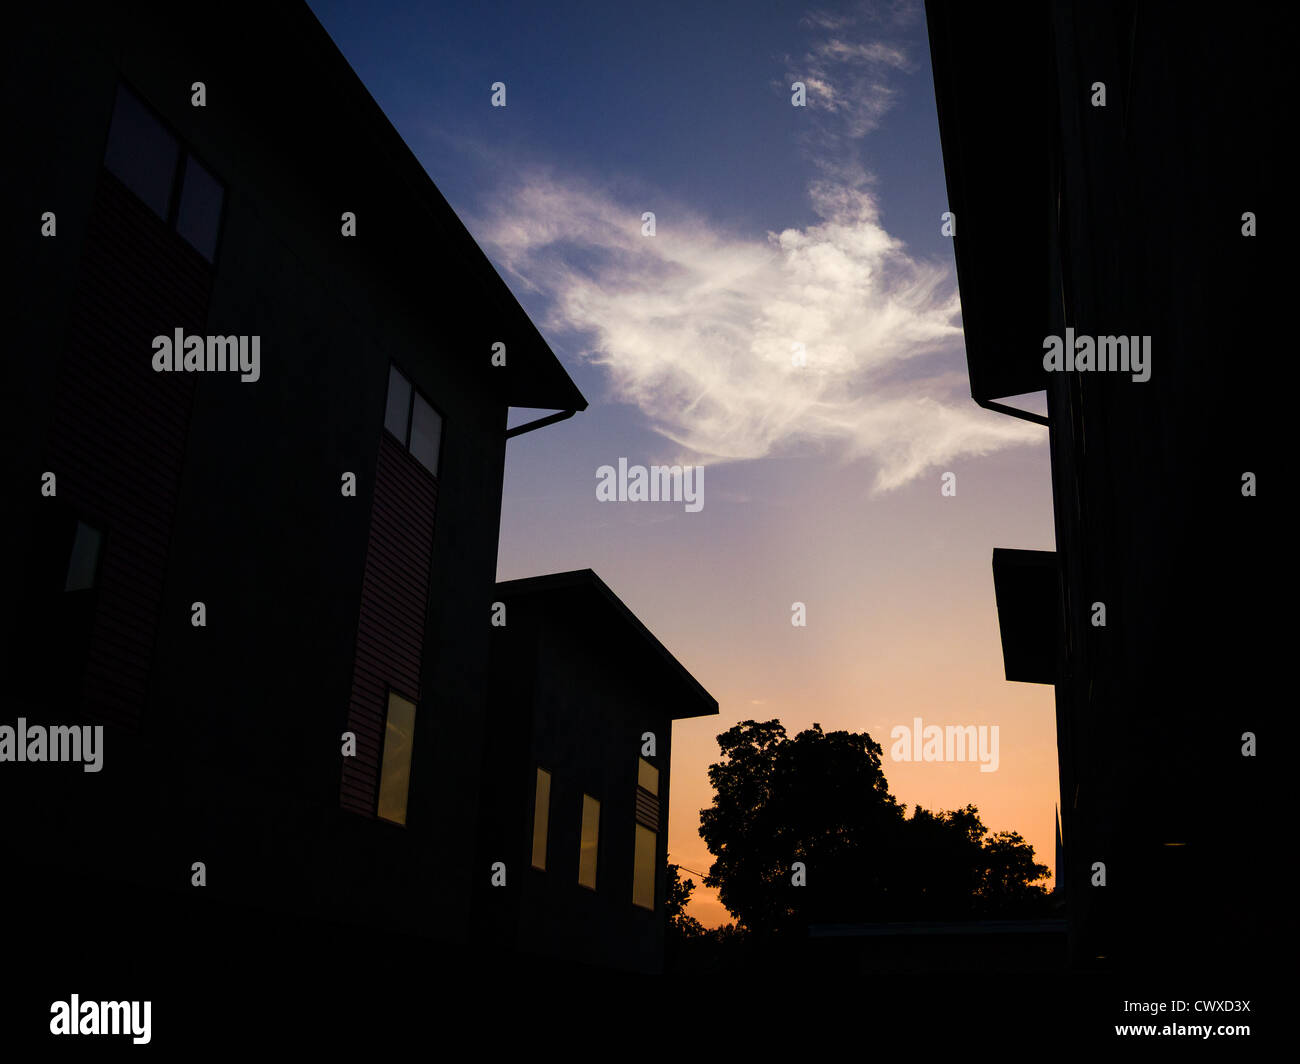 Silhouettes of townhouse condos against a colorful sunset - Stock Image